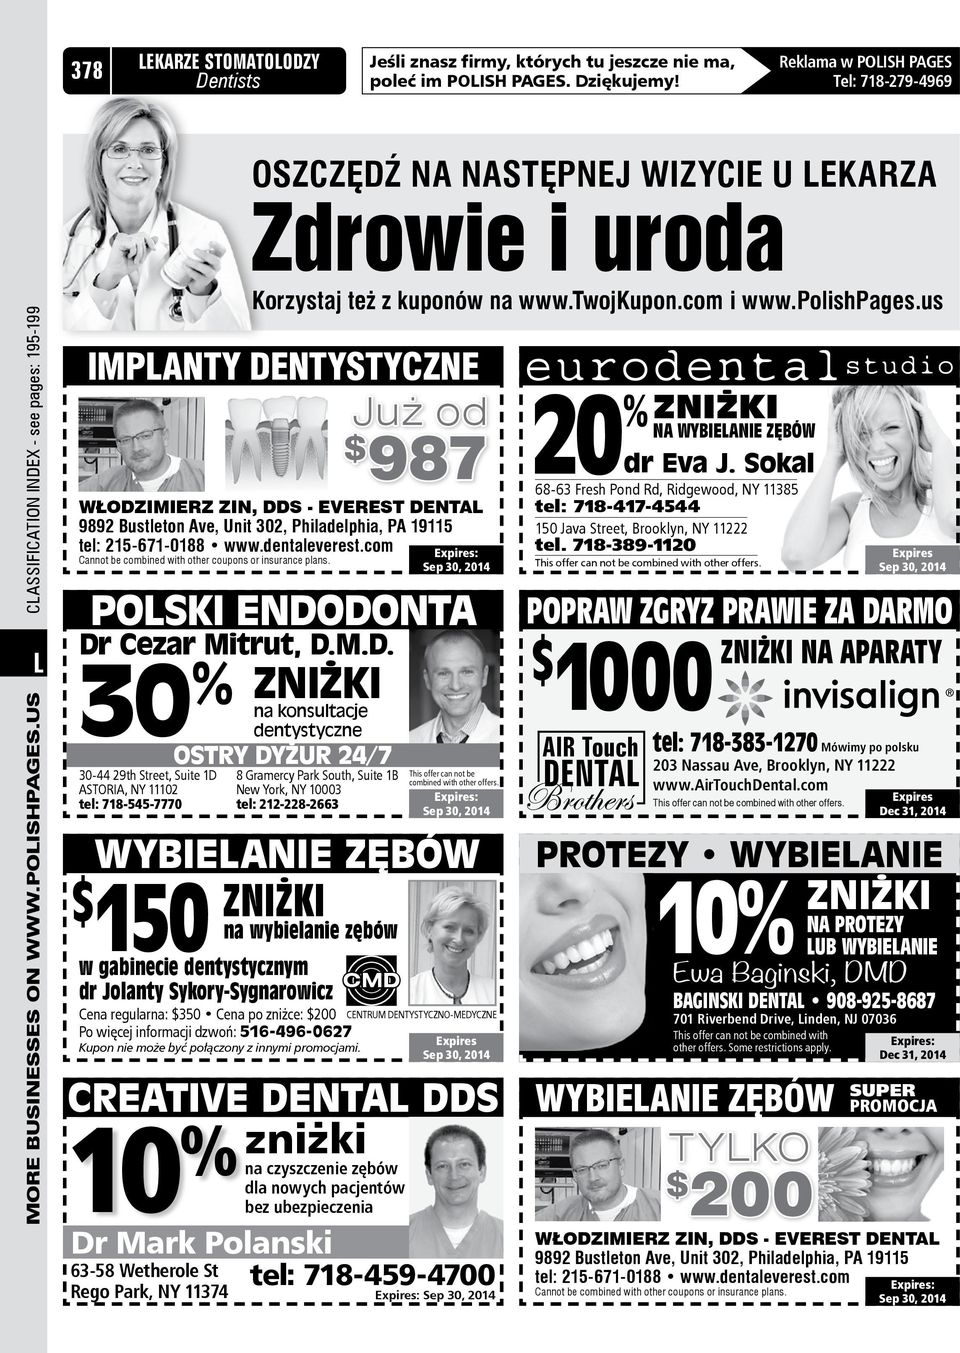 us LMore businesses on www.polishpages.